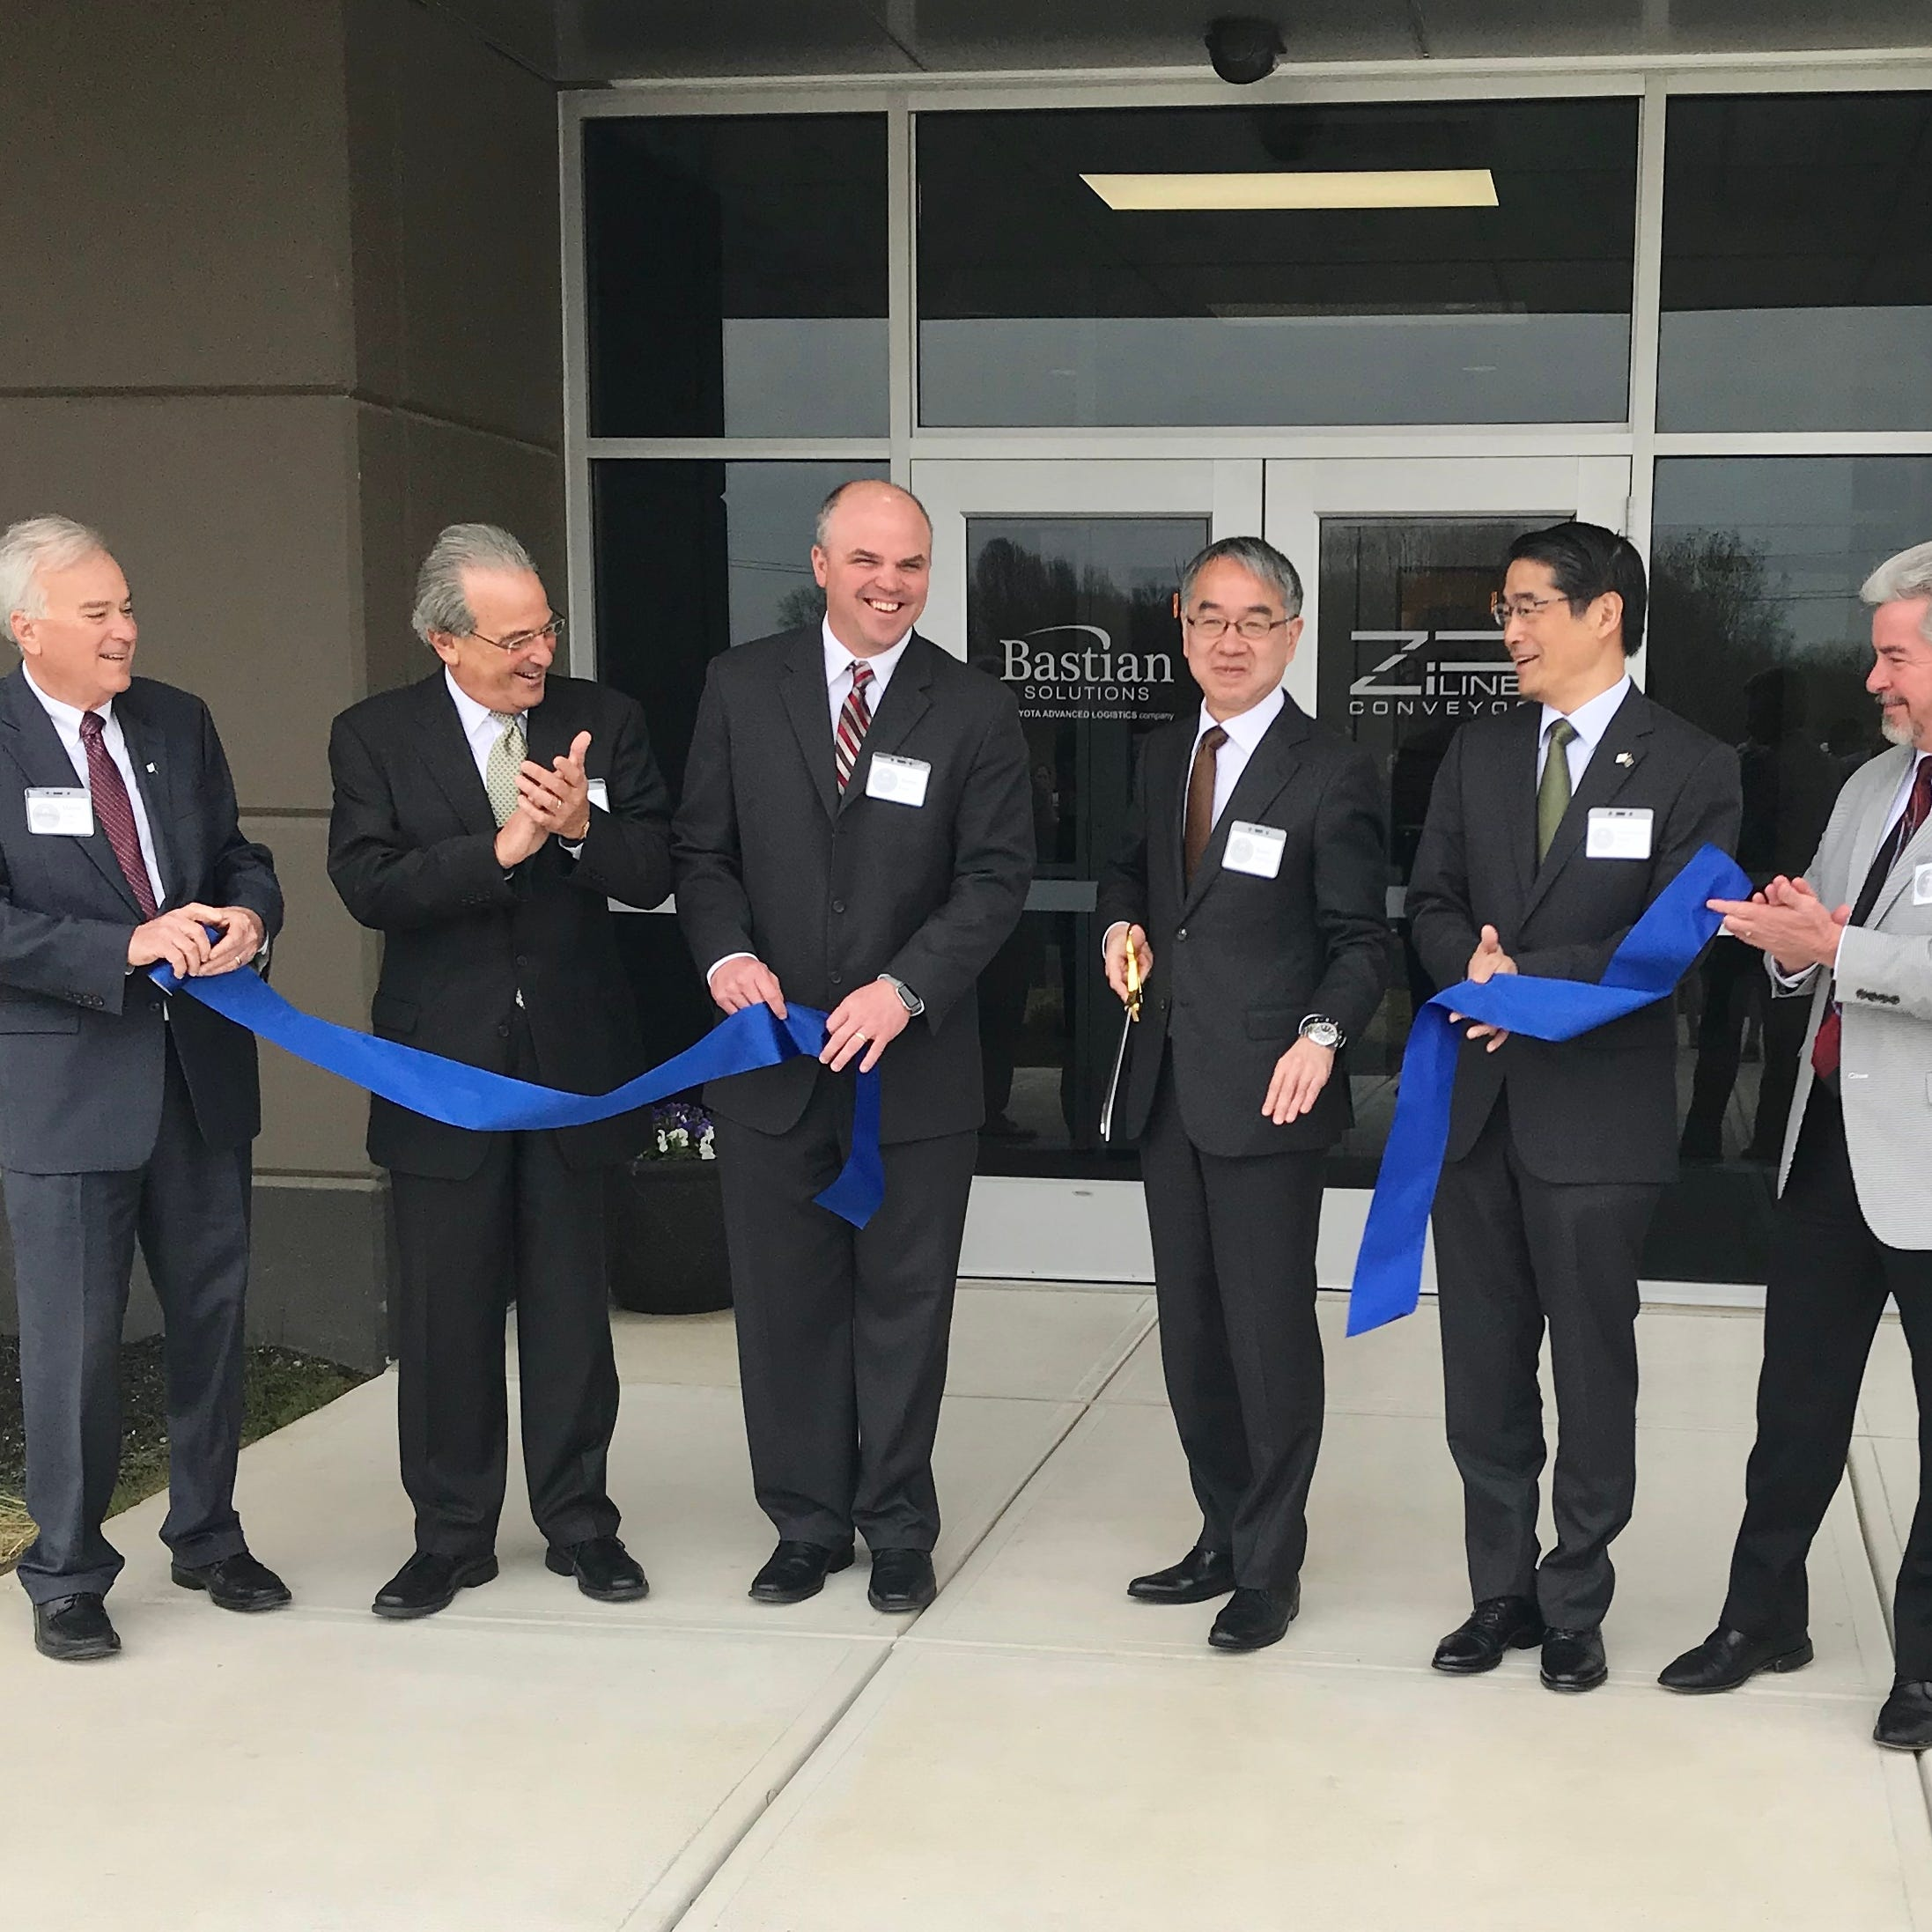 Bastian Solutions opens $8M manufacturing facility in Westfield